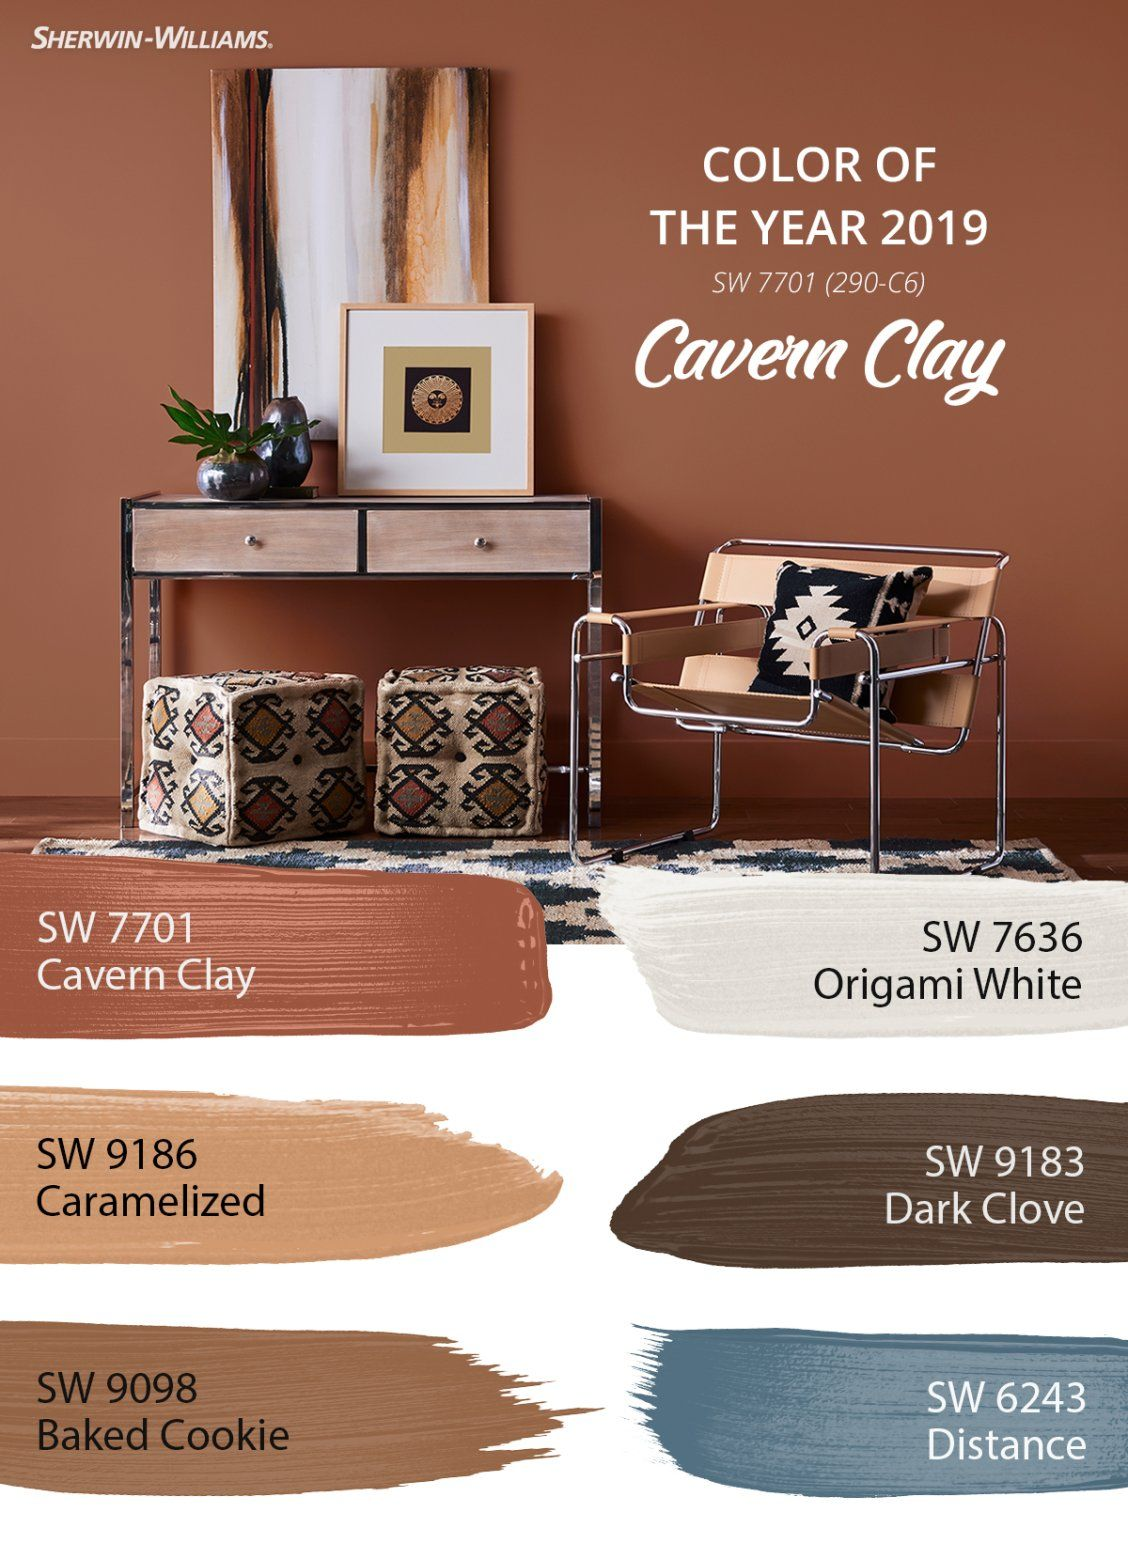 Hidden Among The Wanderer Palette Is The 2019 Color Of The Year